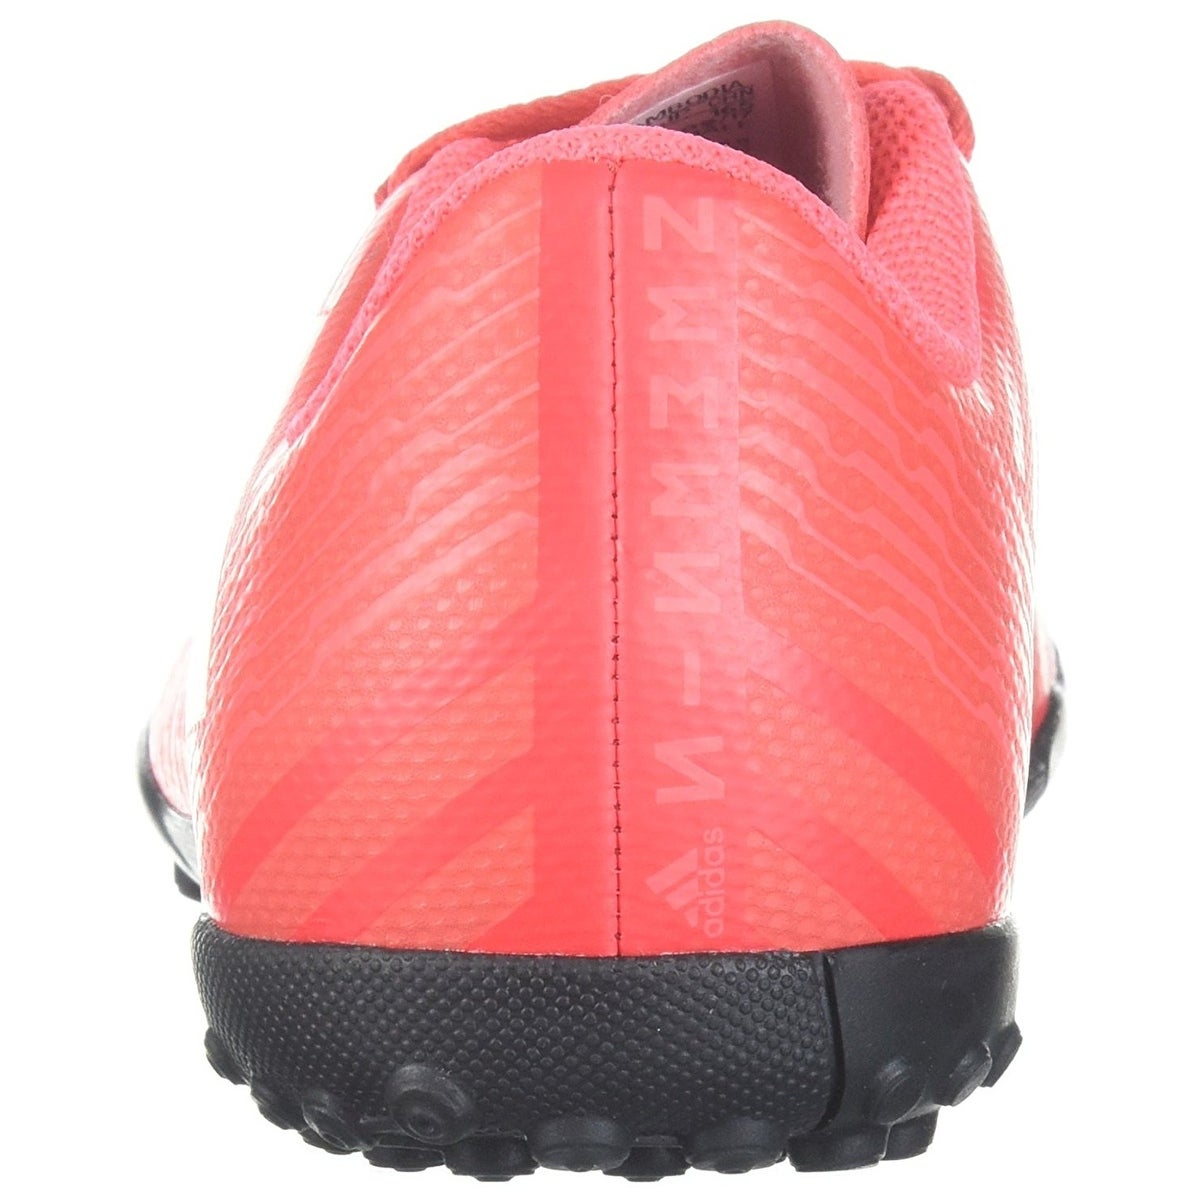 d249dc270d2a Shop Kids Adidas Girls NEMEZIZ TANGO Fabric Low Top Lace Up Soccer Sneaker  - Free Shipping On Orders Over  45 - Overstock - 25494204